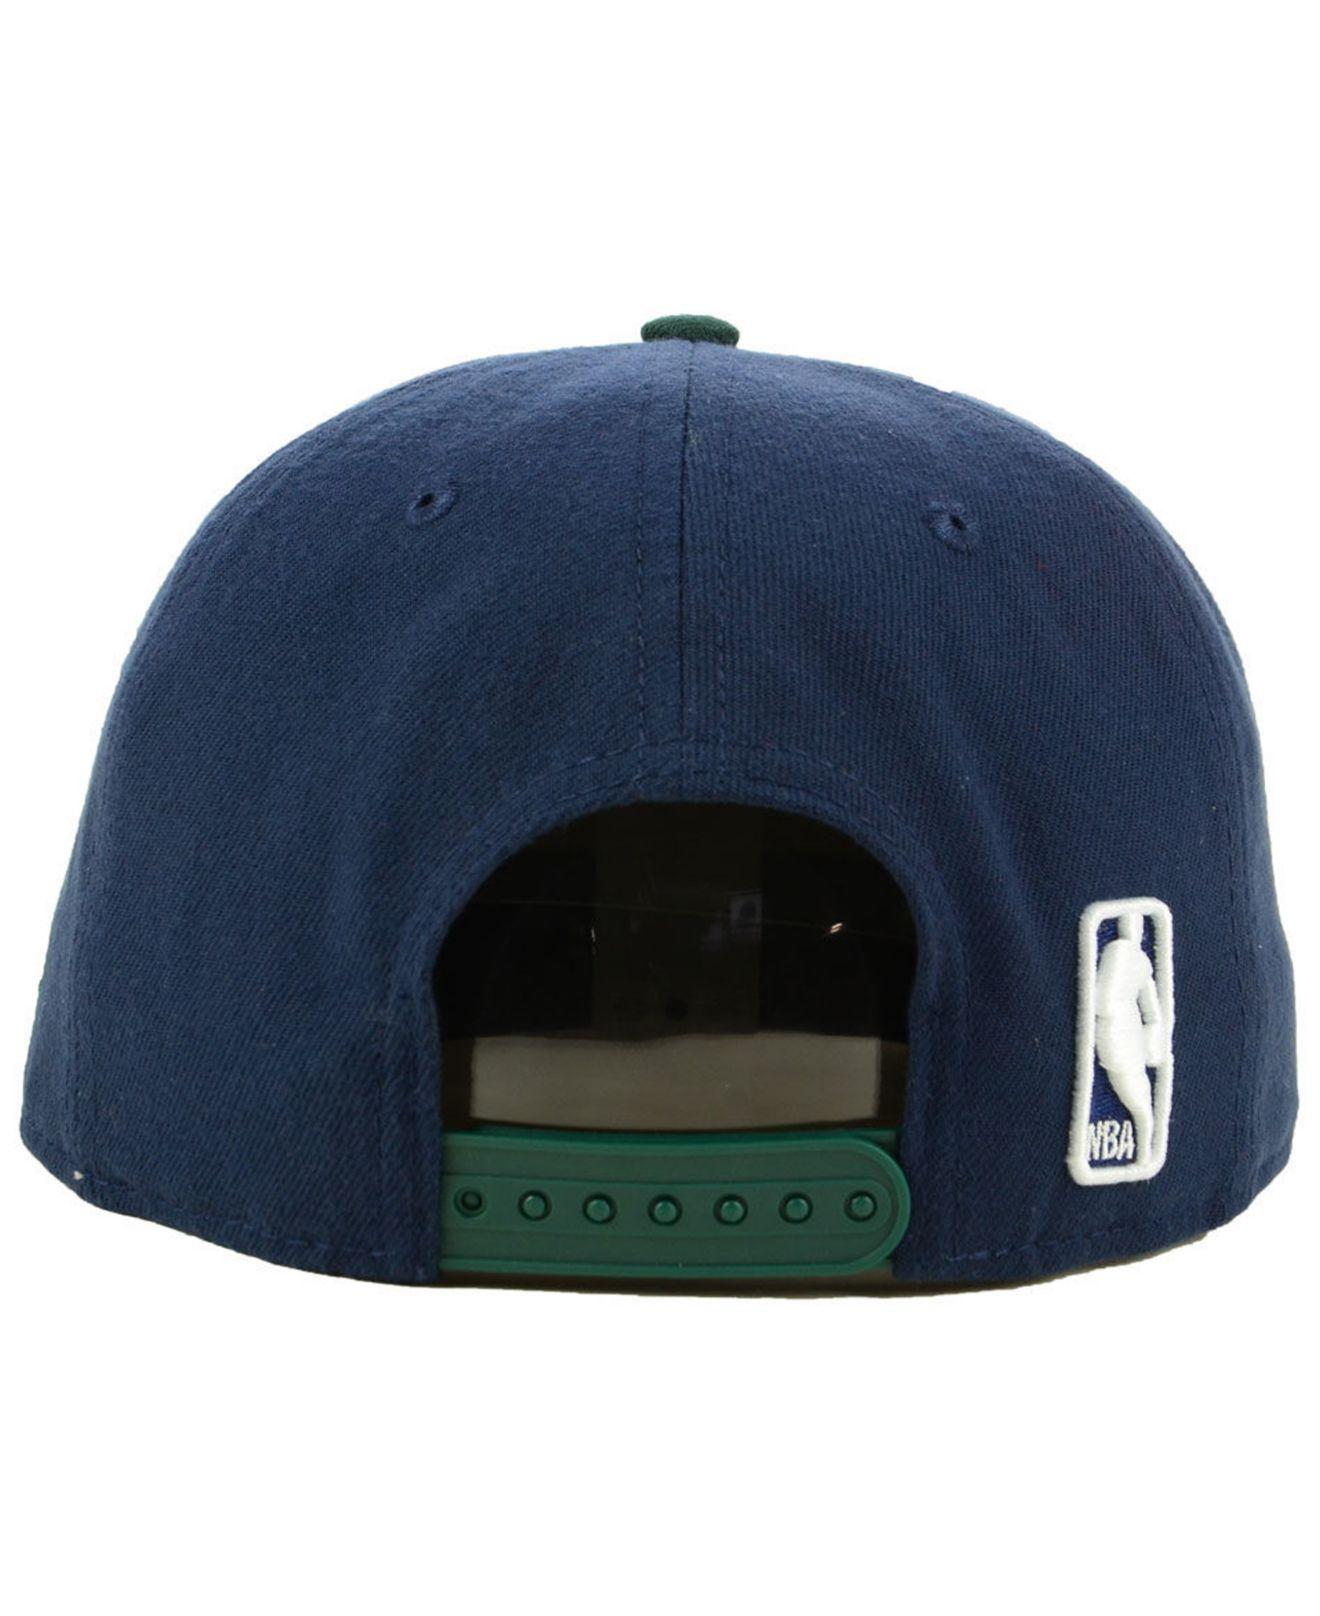 cheap for discount 2a612 6e01d ... germany lyst ktz utah jazz basic 2 tone 9fifty snapback cap in blue for  men 2ec04